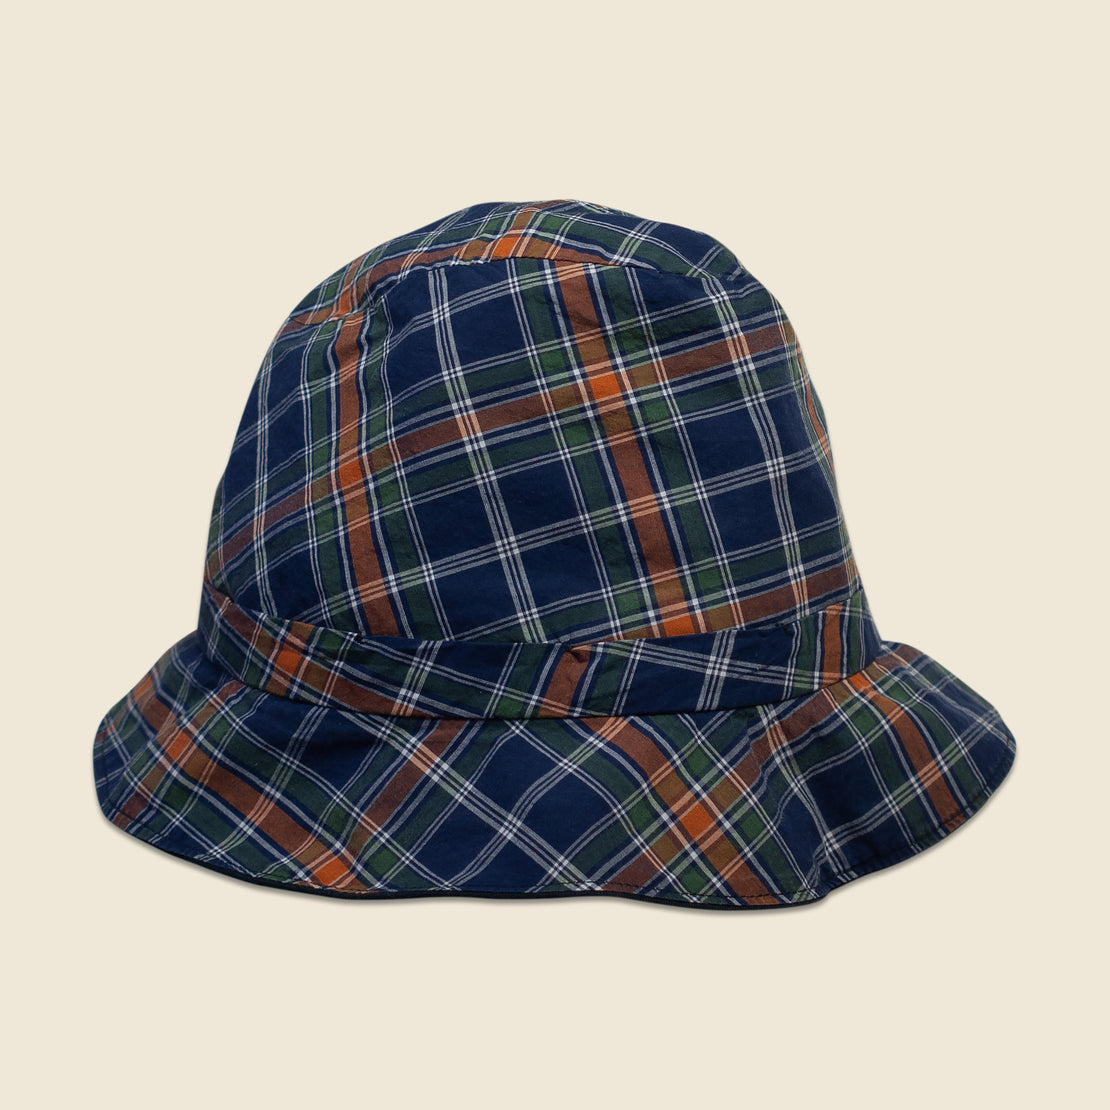 Reversible Bucket Hat - Navy/Plaid